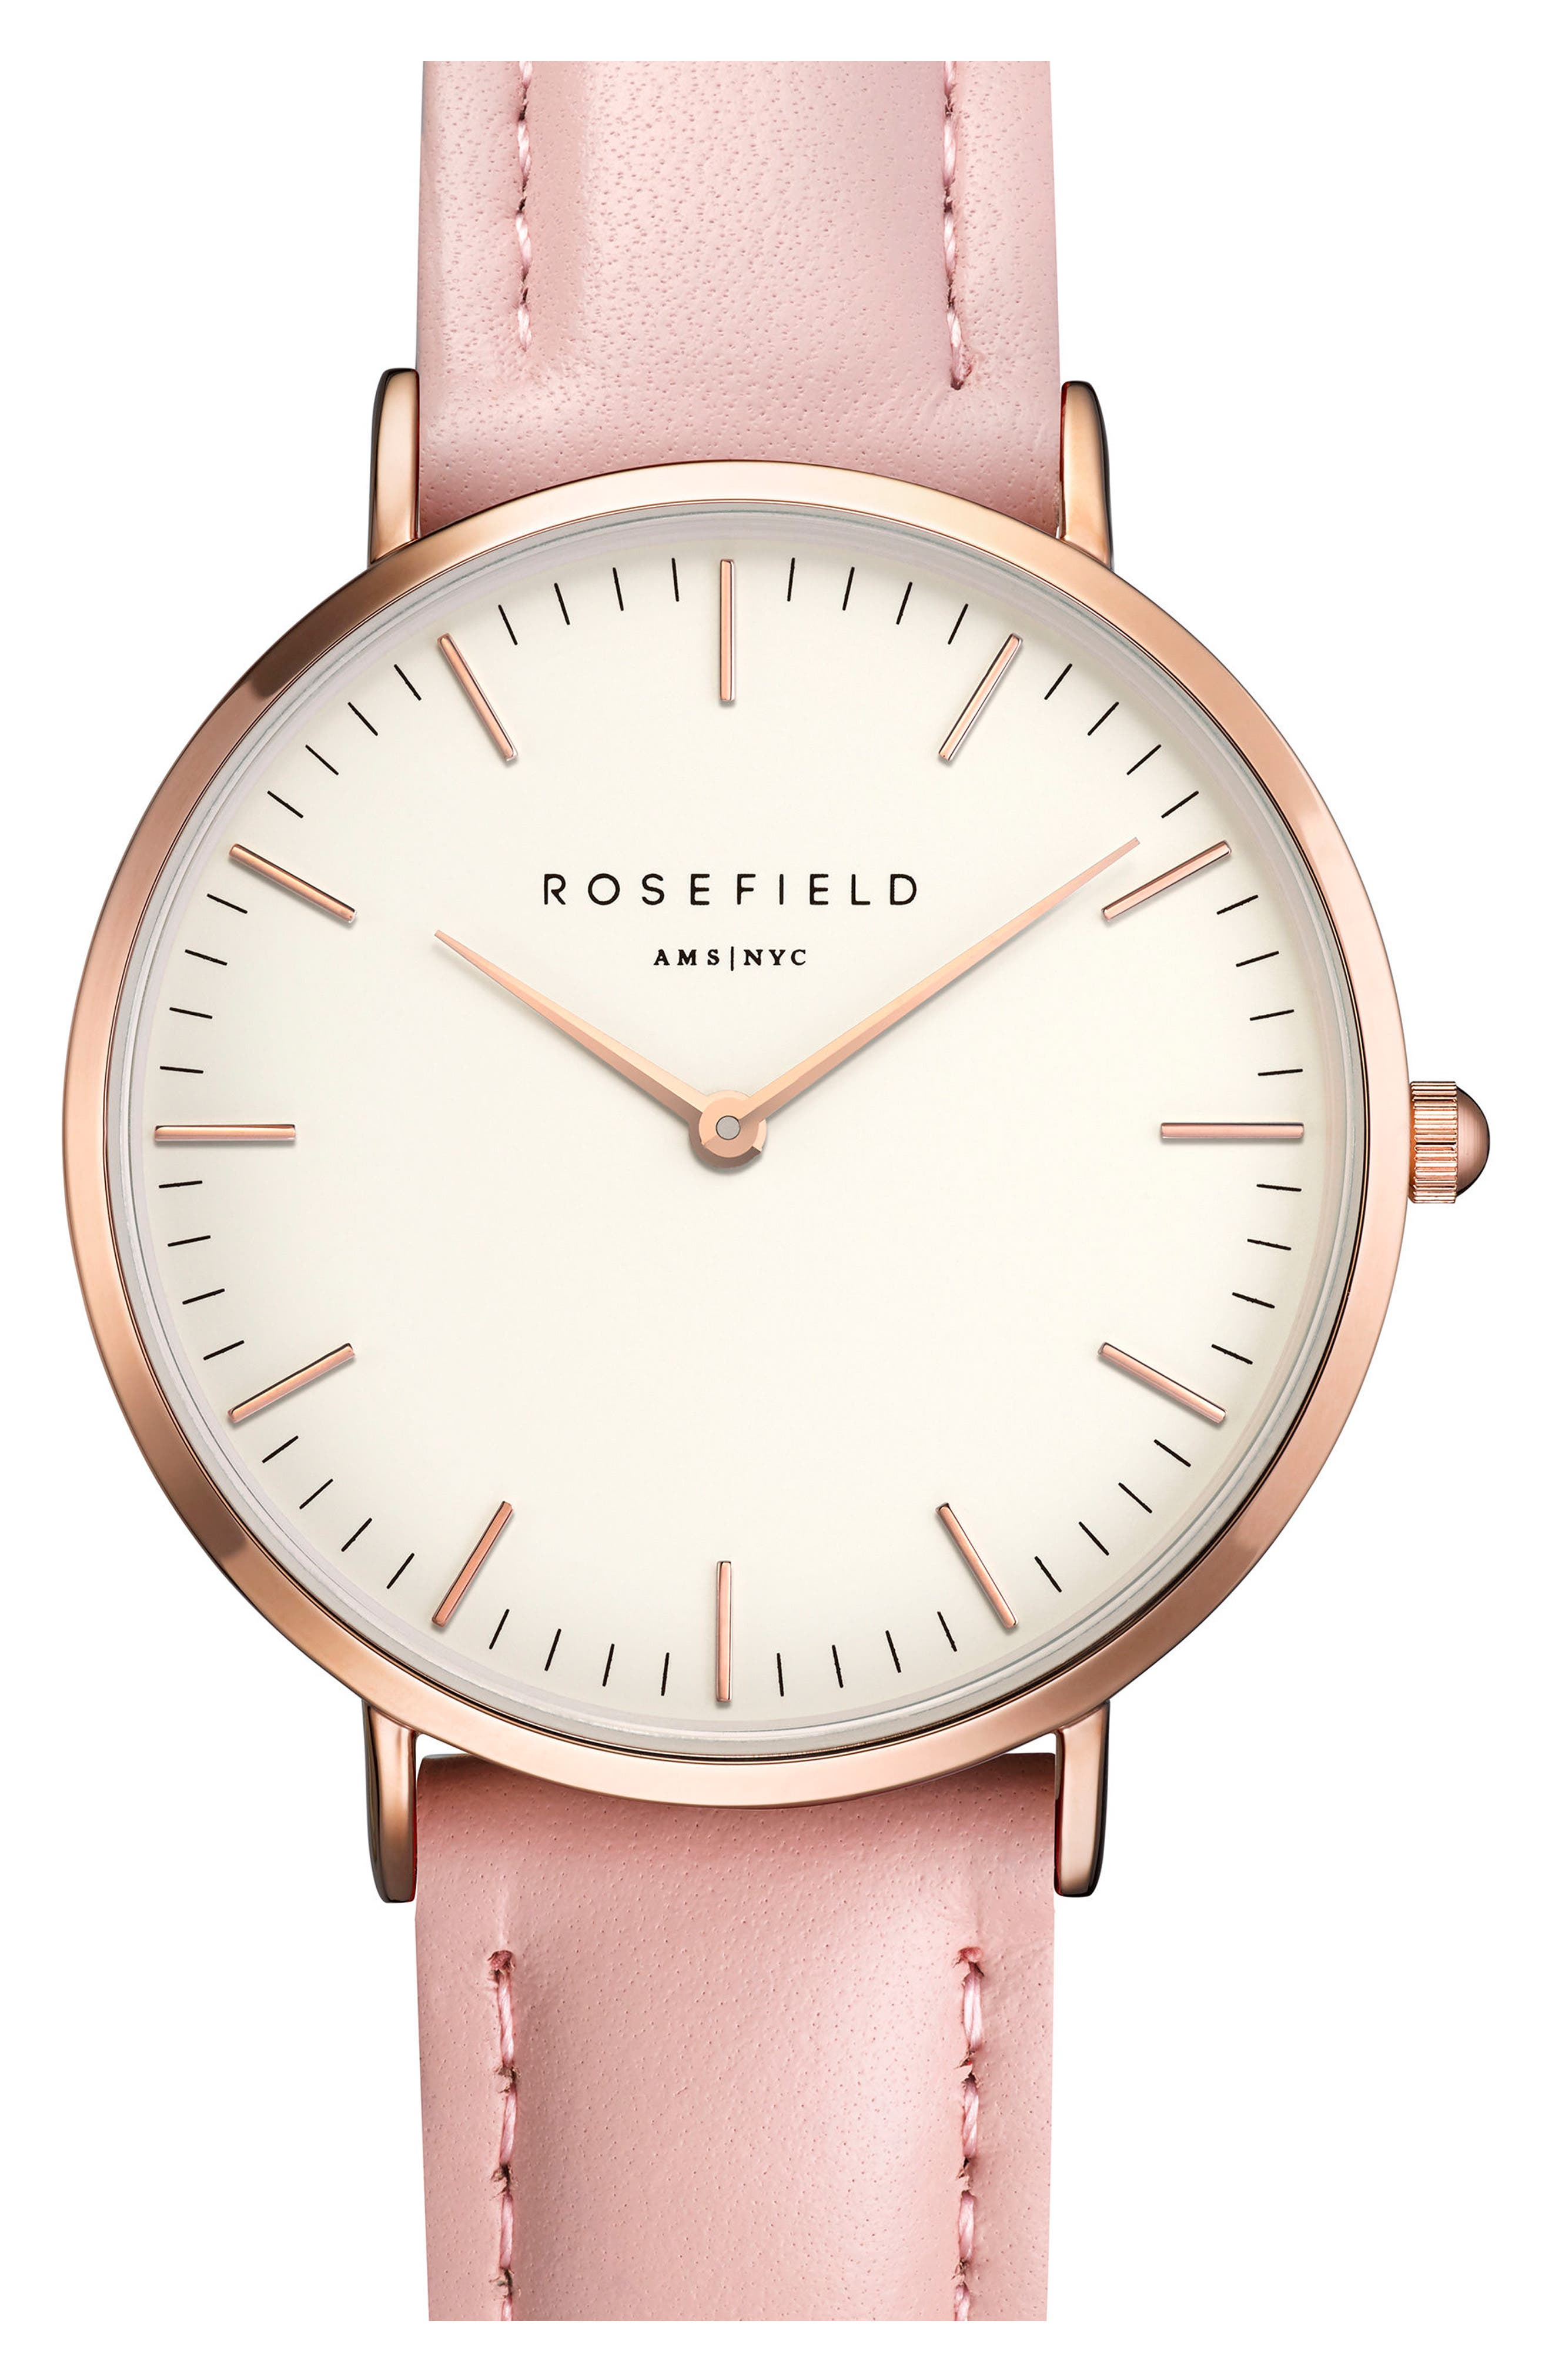 Tribeca Leather Strap Watch, 33mm,                         Main,                         color, Pink/ White/ Rose Gold